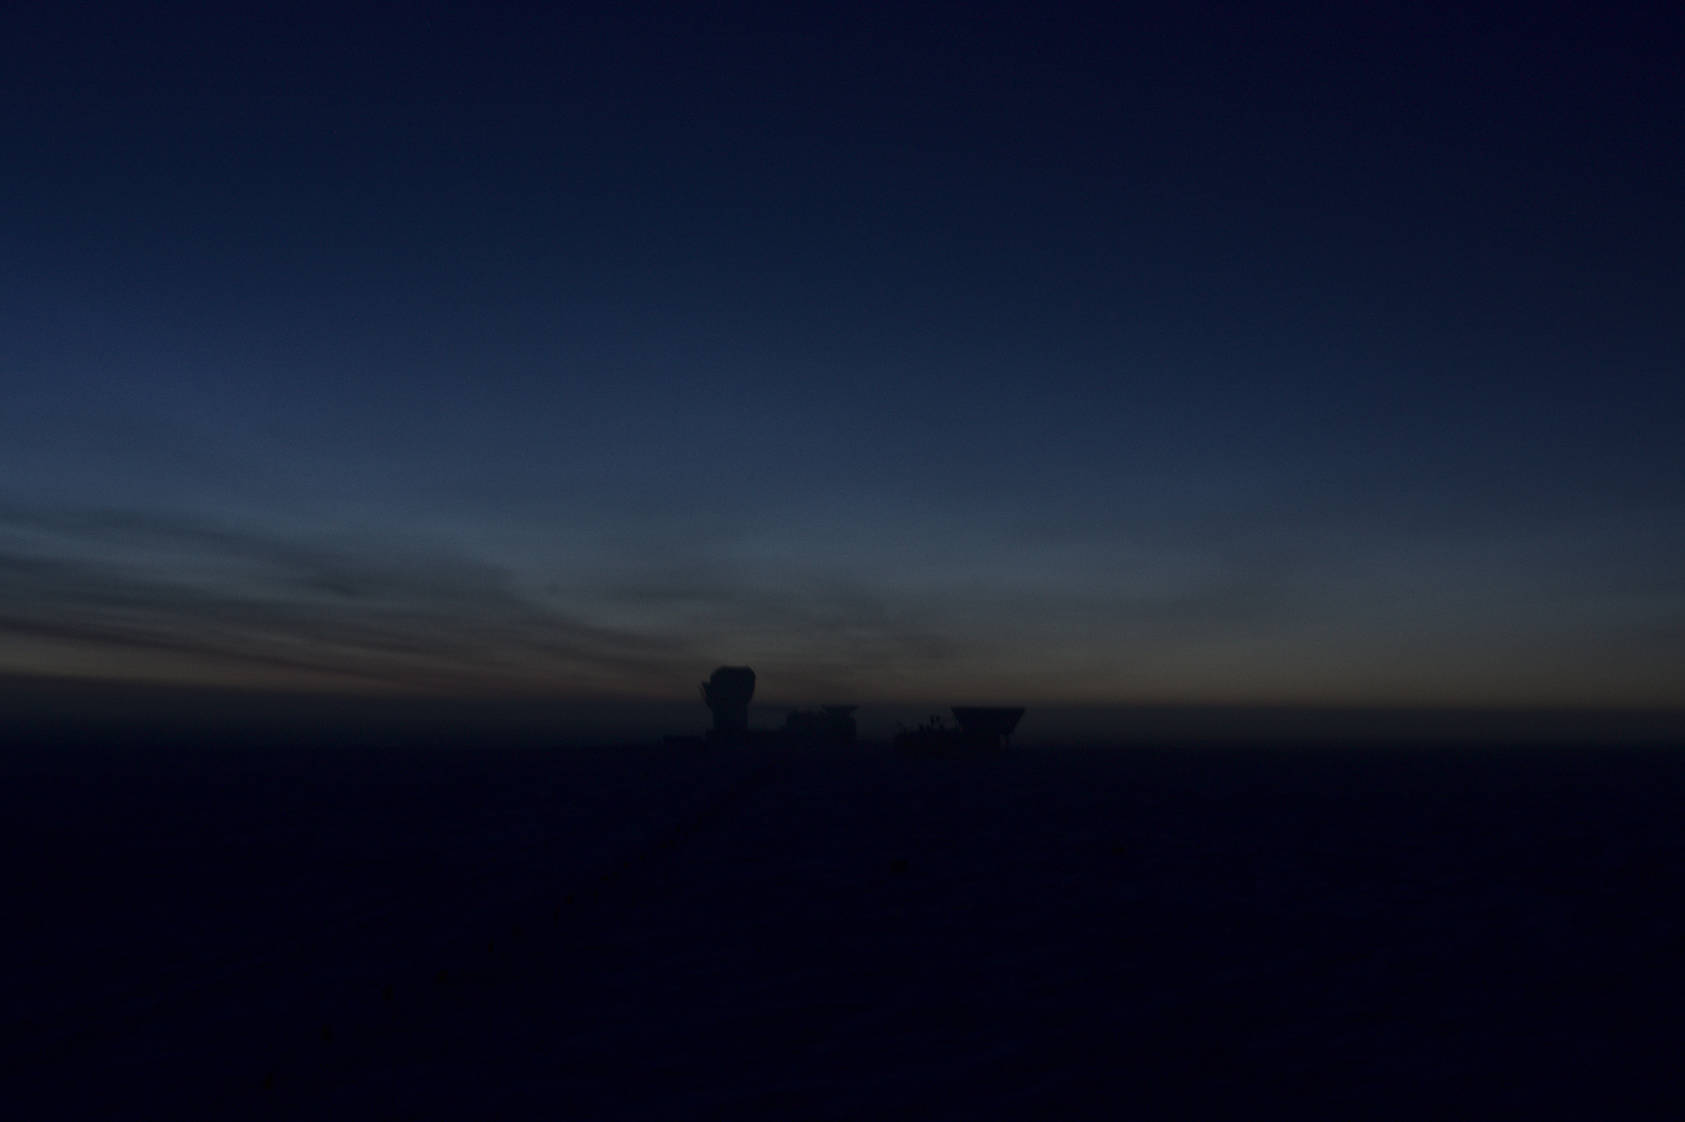 A faint glimpse of light on the horizon behind the telescope... Just three more weeks until sunrise!